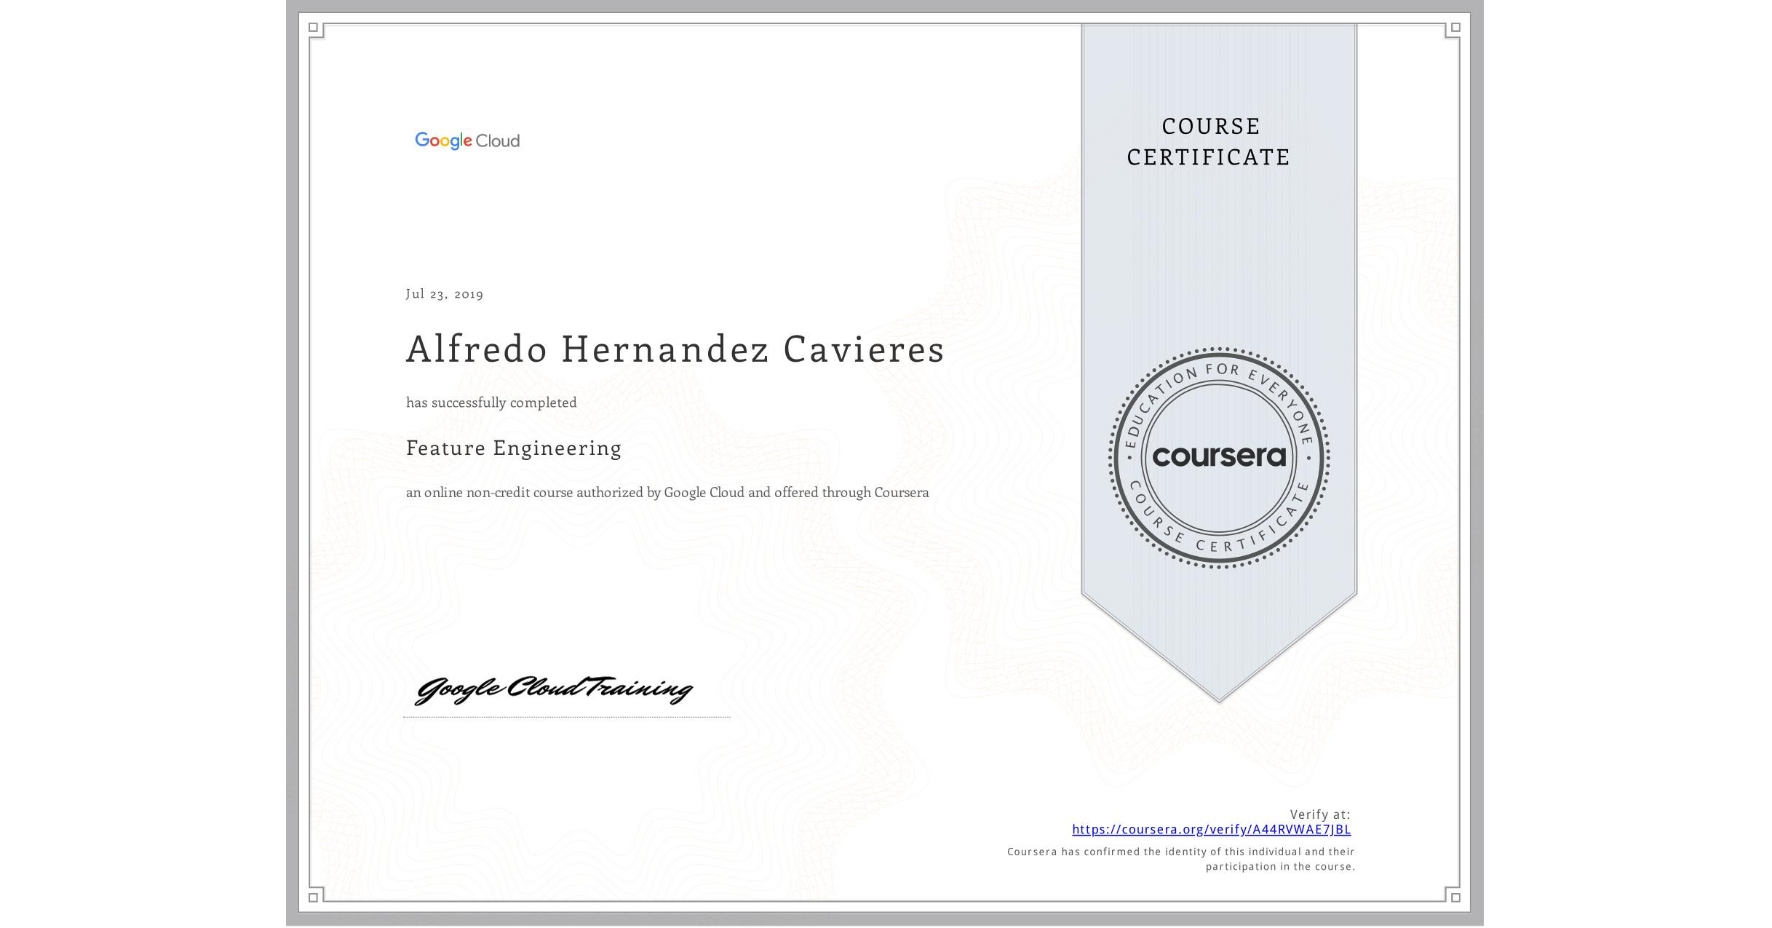 View certificate for Alfredo Hernandez Cavieres, Feature Engineering, an online non-credit course authorized by Google Cloud and offered through Coursera